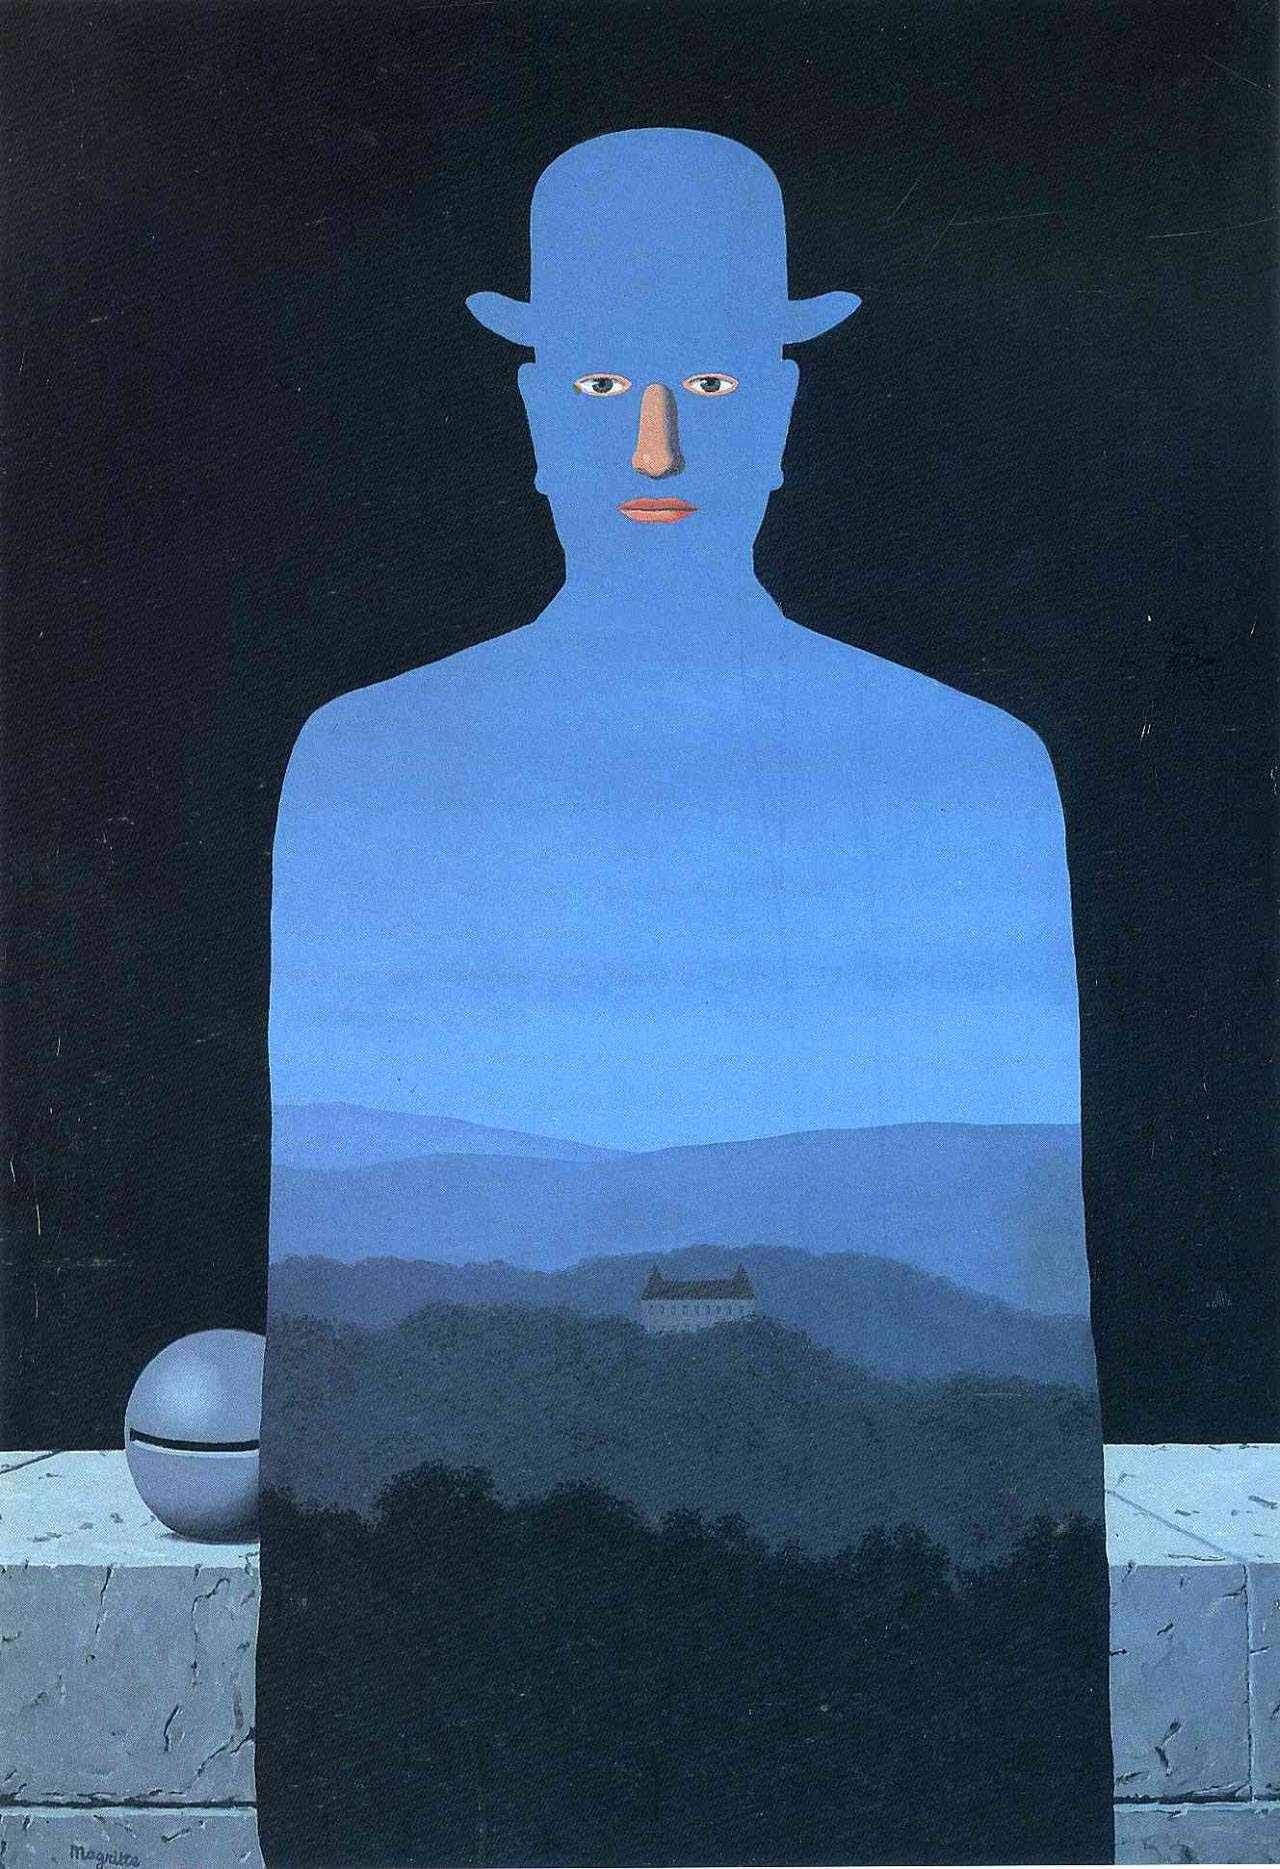 The king's museum, 1966 Rene Magritte